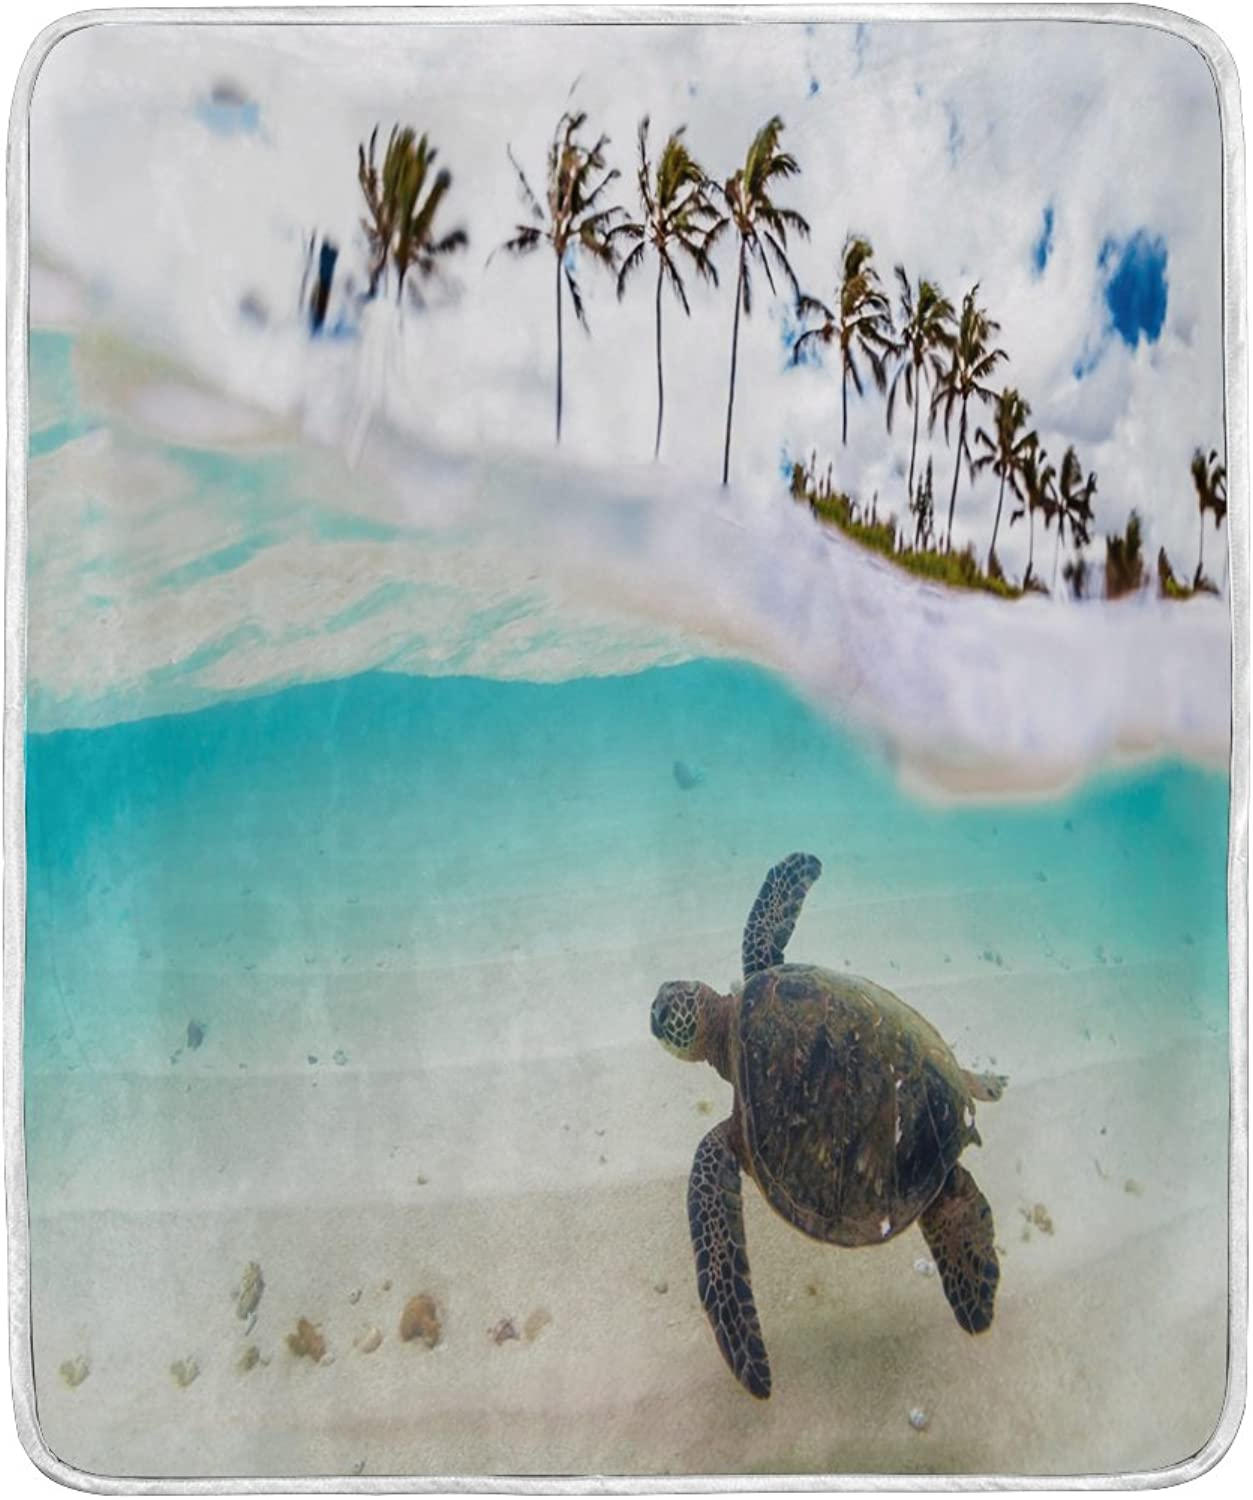 ALAZA Home Decor Palm Tree Hawaiian Sea Turtle Blanket Soft Warm Blankets for Bed Couch Sofa Lightweight Travelling Camping 60 x 50 inch Throw Size for Kids Boys Women